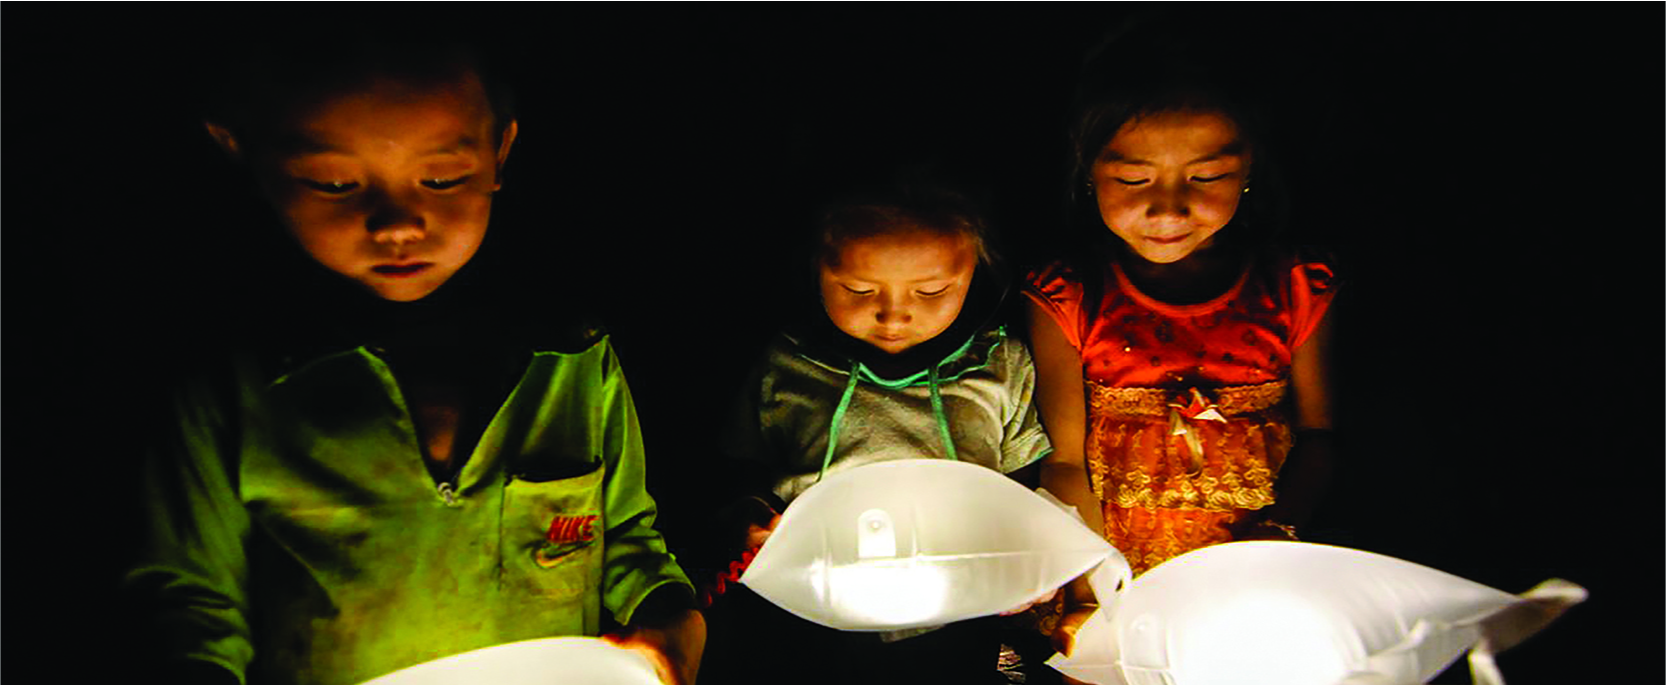 Three children hold white pillow-like objects that emanate light.